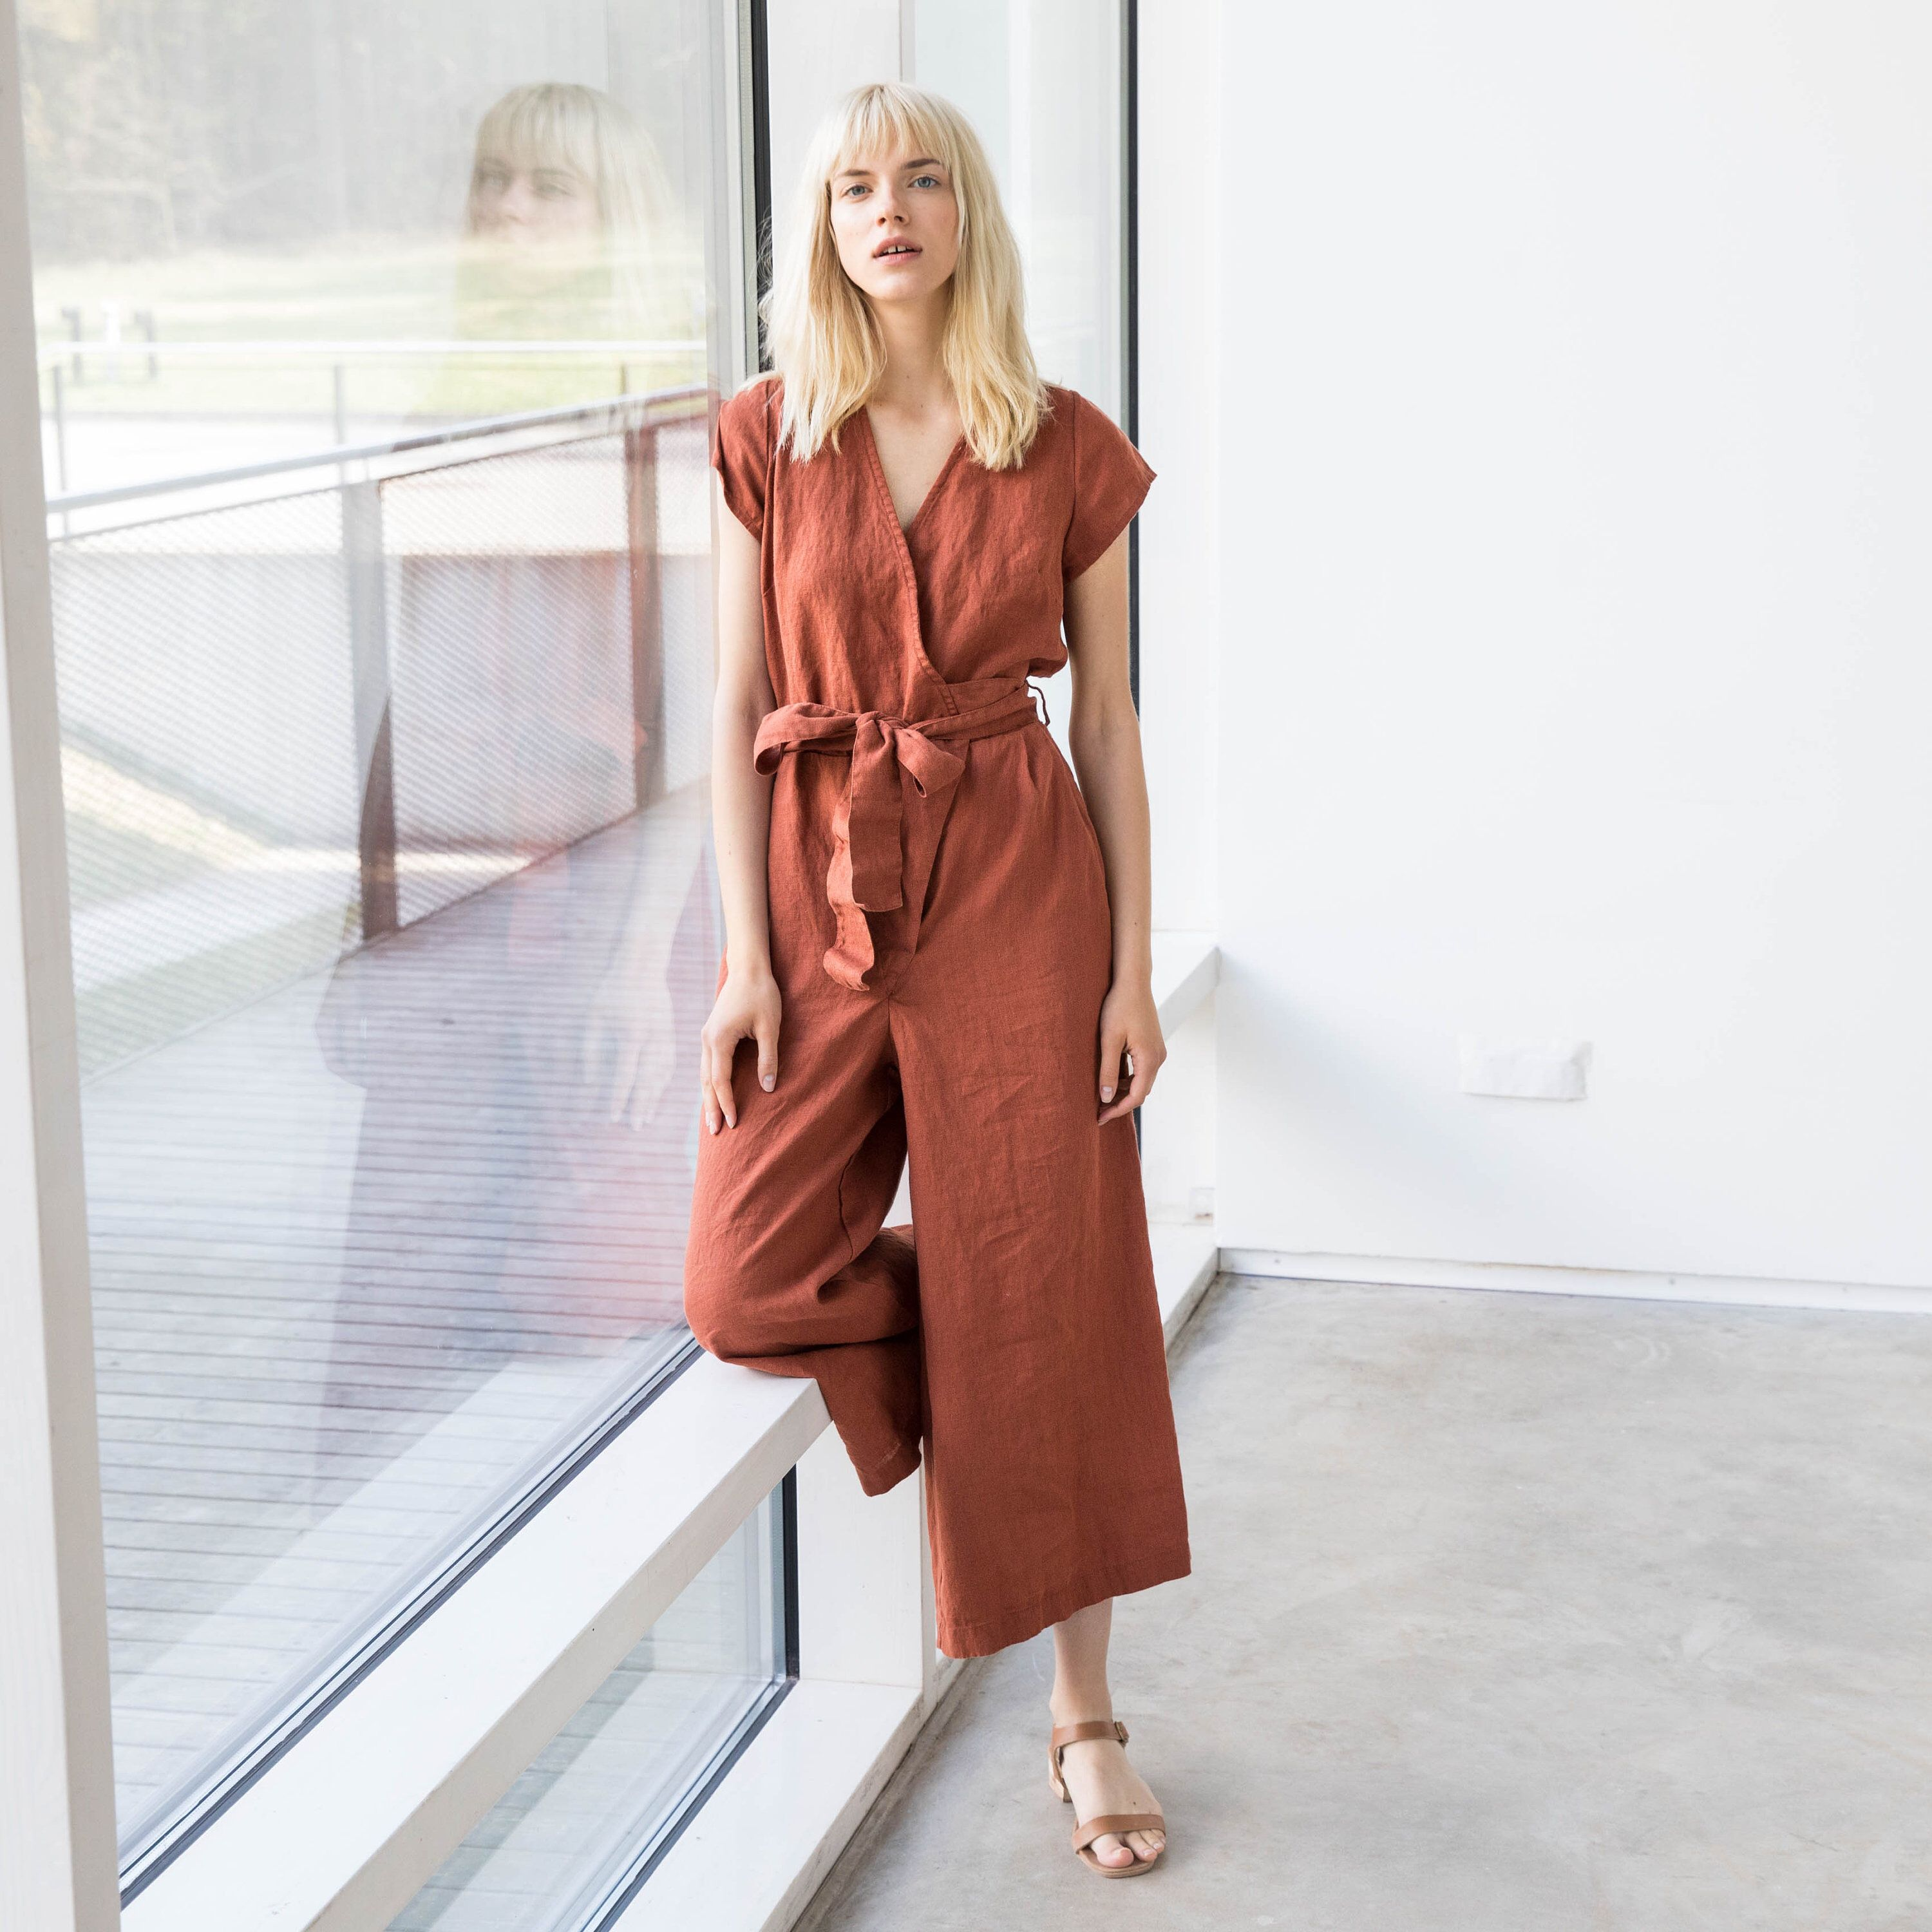 9acd982304a5 Wrap linen jumpsuit TORINO in MAXI length   Washed long linen overall    Linen romper by